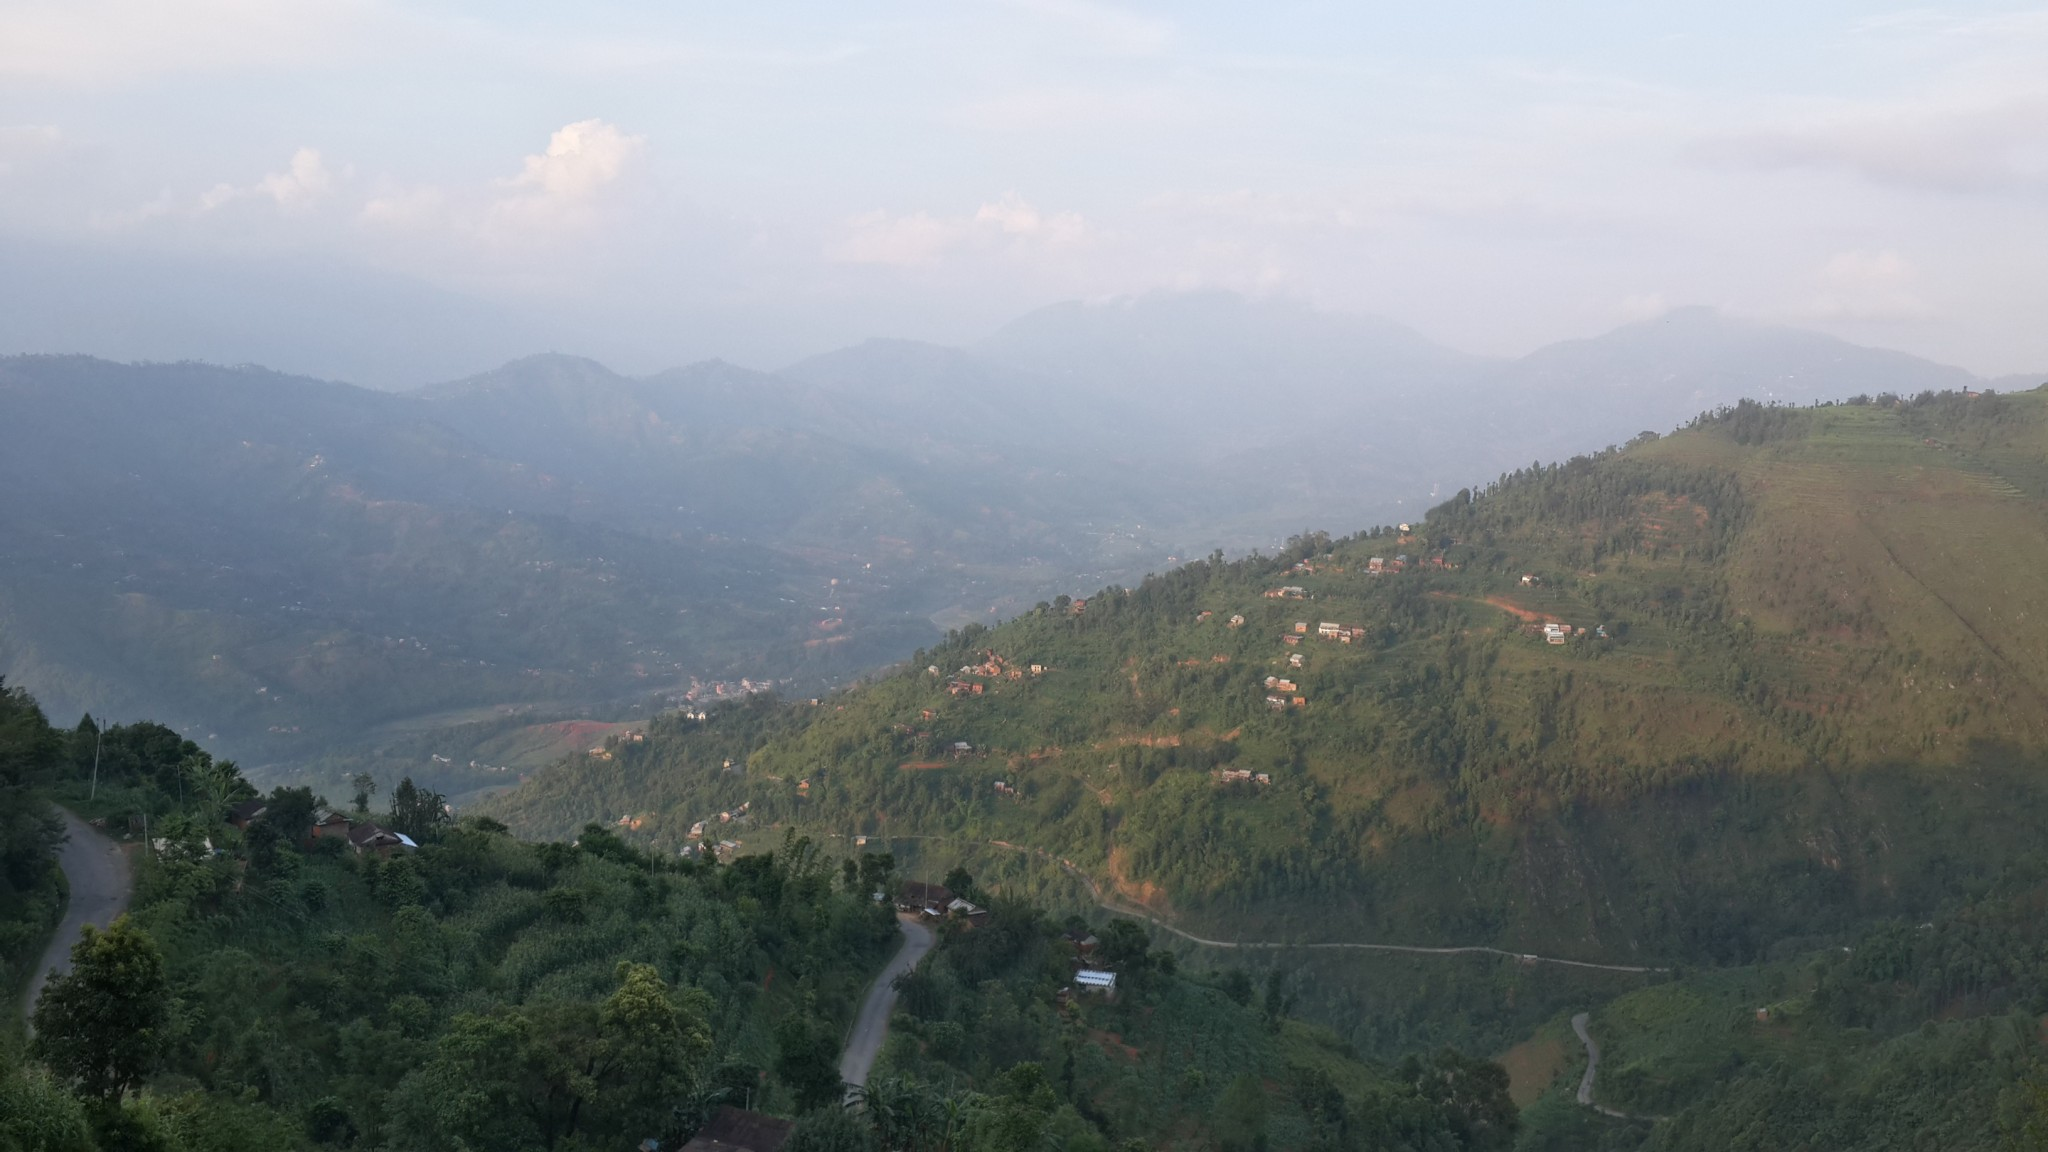 The various sections of road you can see are all parts of the same winding road. Kathmandu valley lies beyond sight, twenty miles to go.